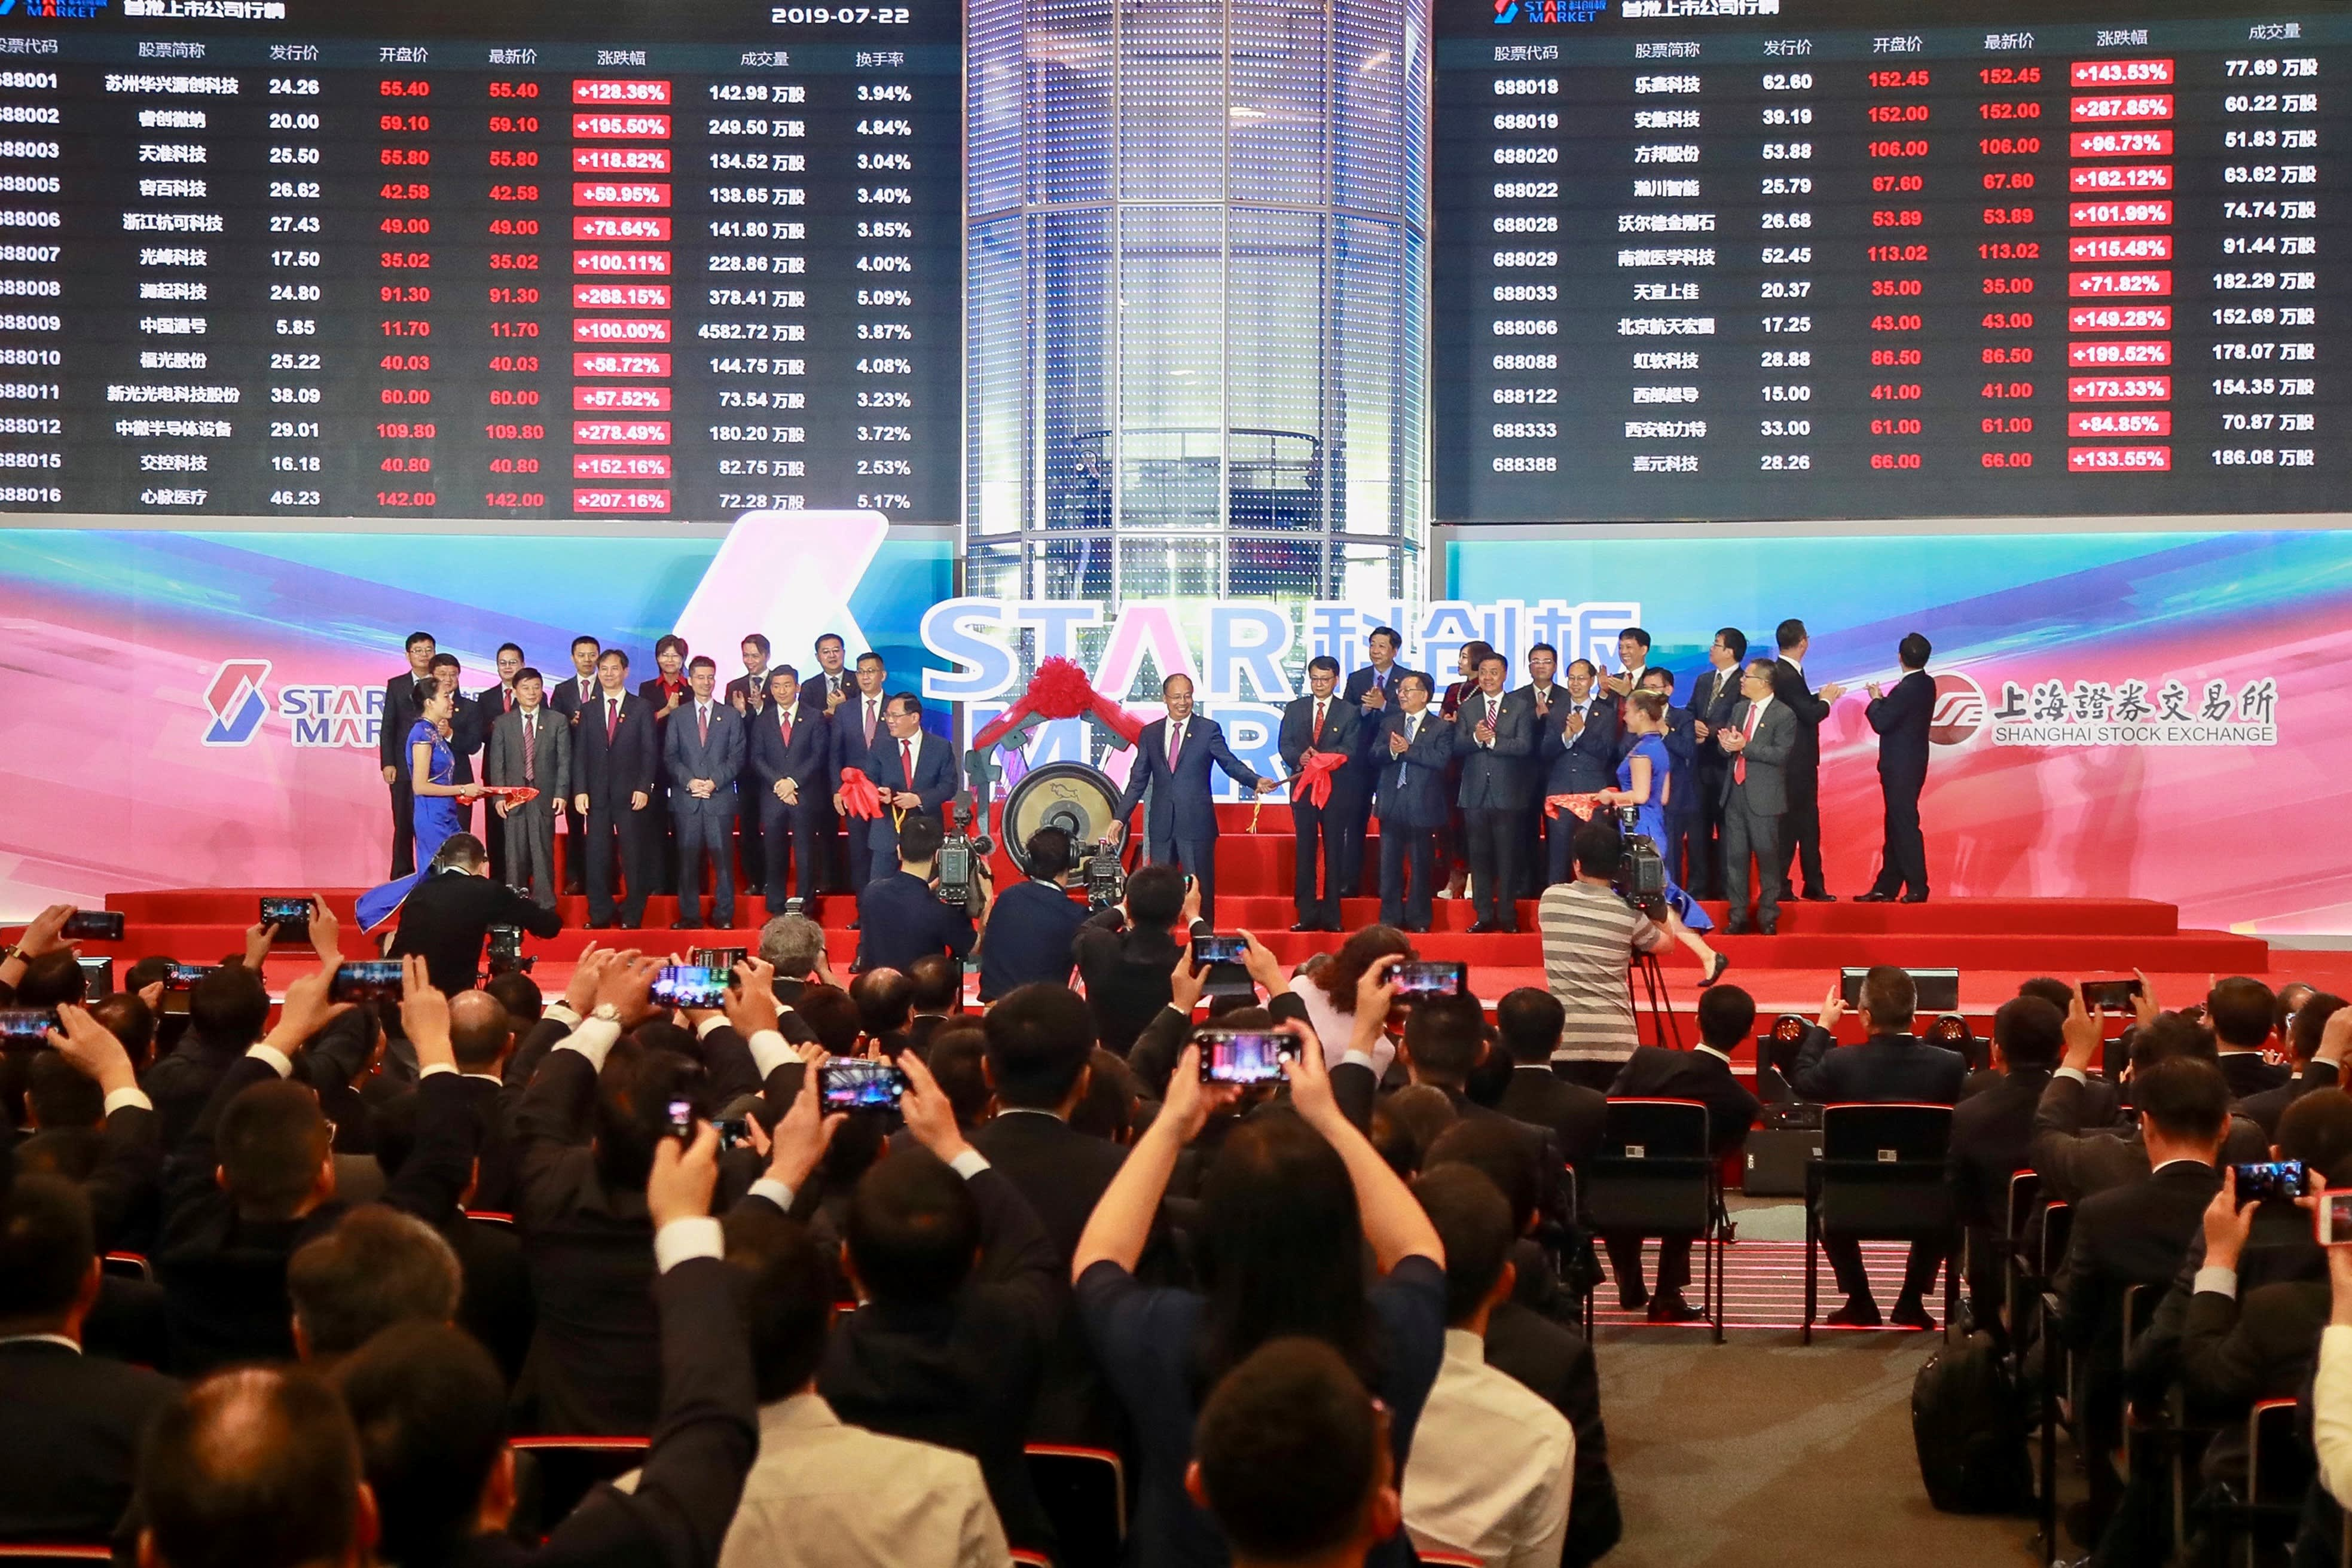 Analysts urge caution as stocks on Shanghai's new Nasdaq-style tech board surge thumbnail